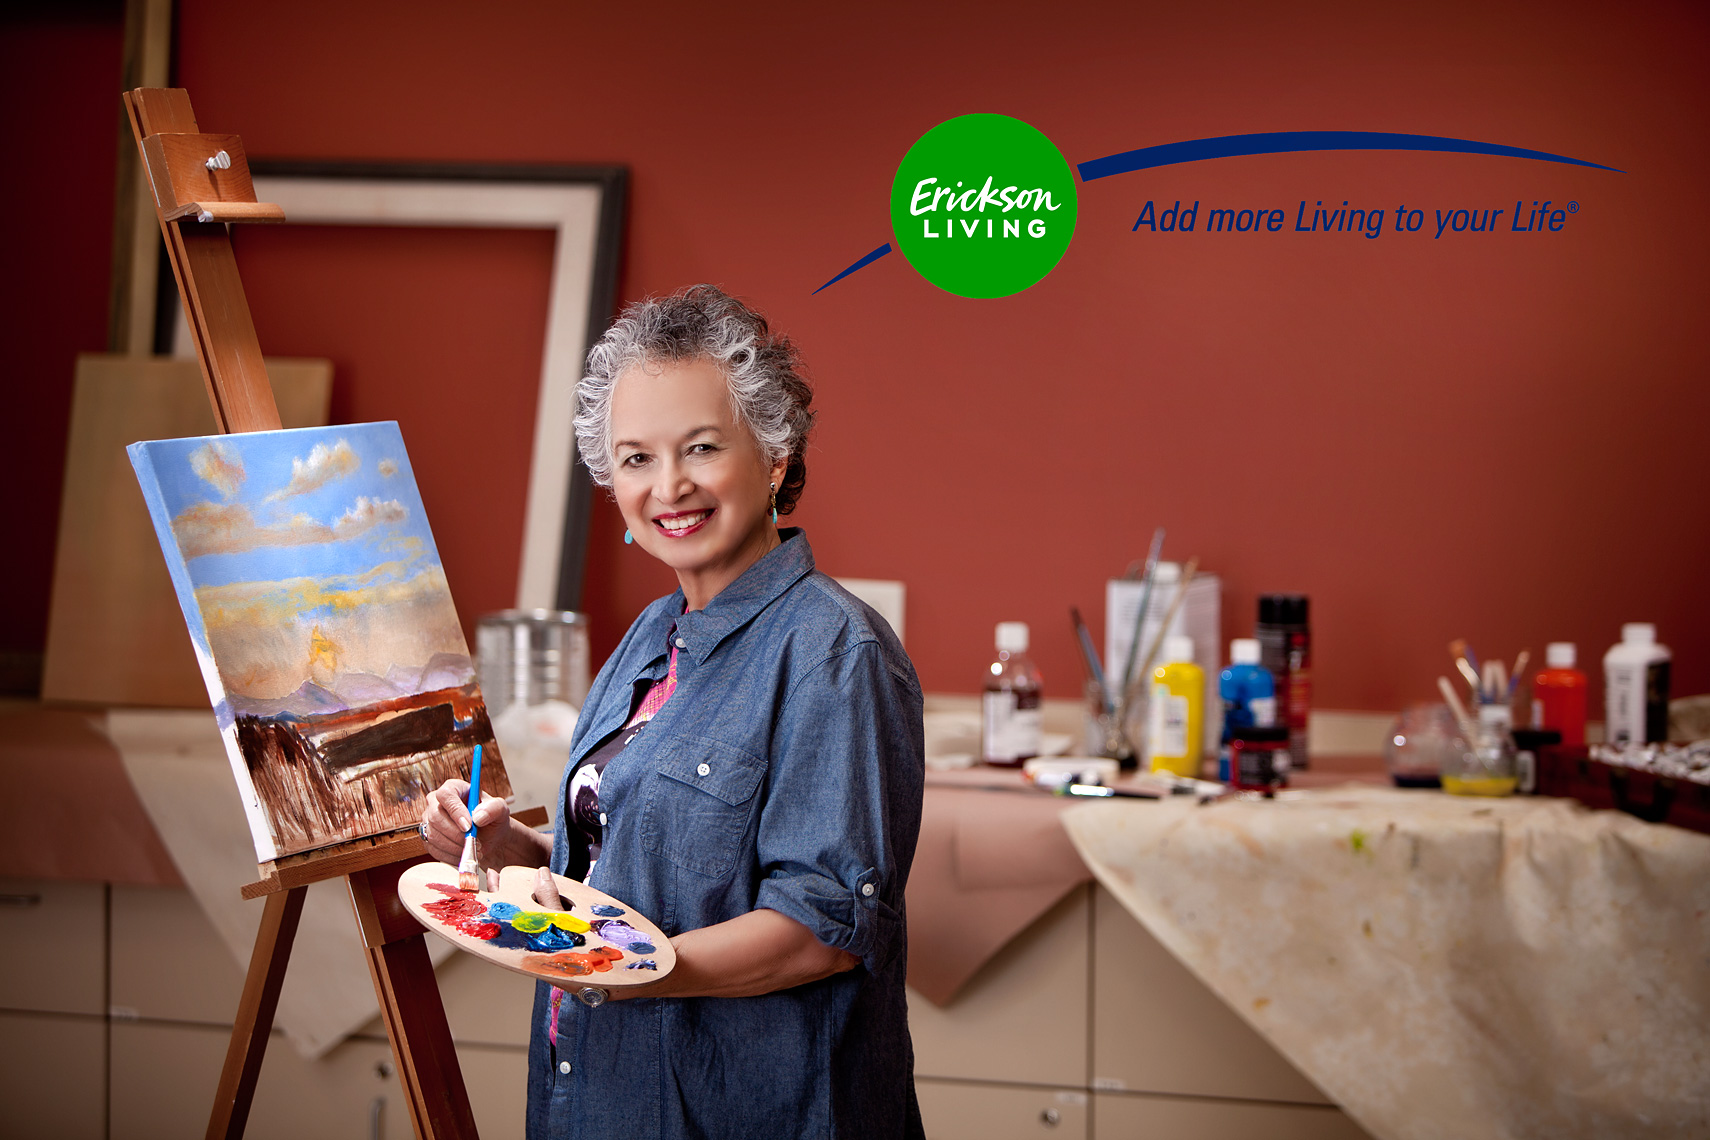 advertising-portrait-for-detroit-senior-living-center-in-tallgrass-arts-and-crafts-room-by-photographer-scott-stewart